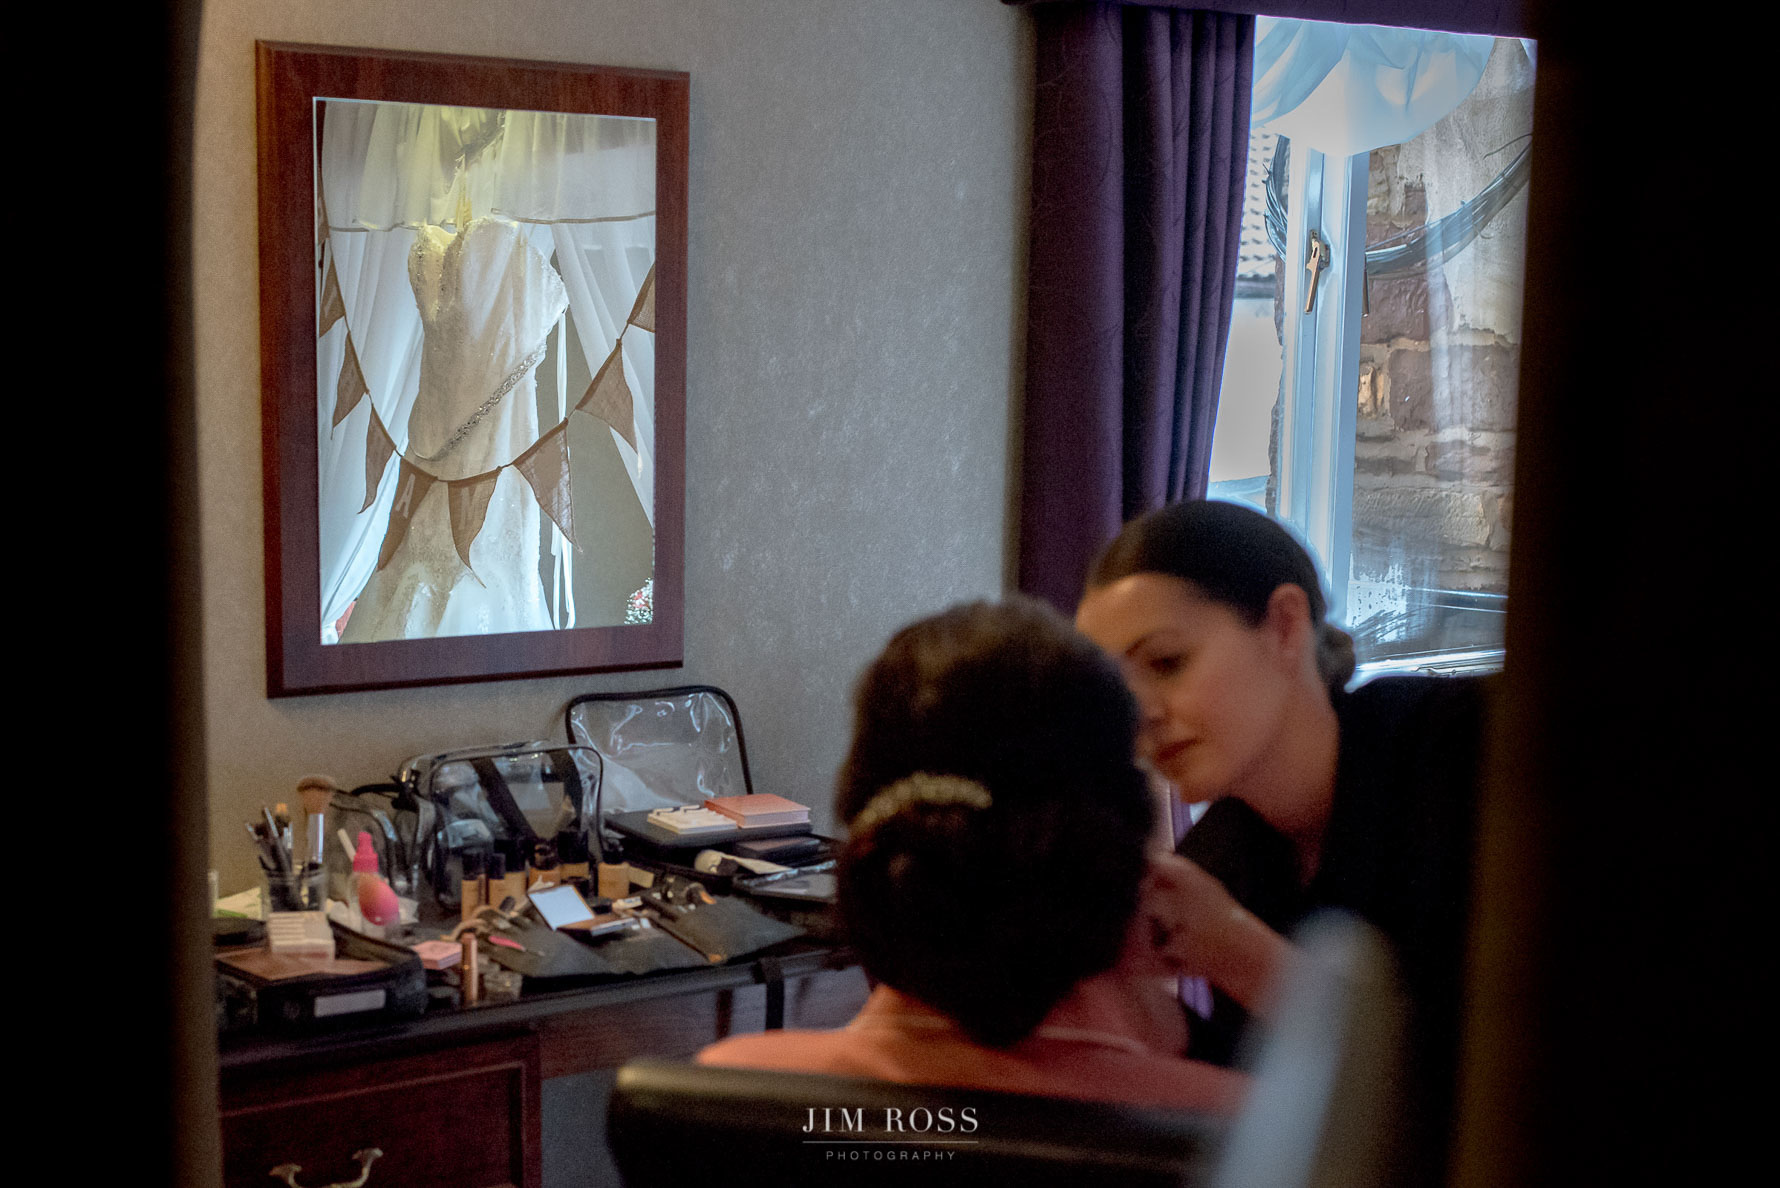 Makeup artist at work with dress hanging in mirror